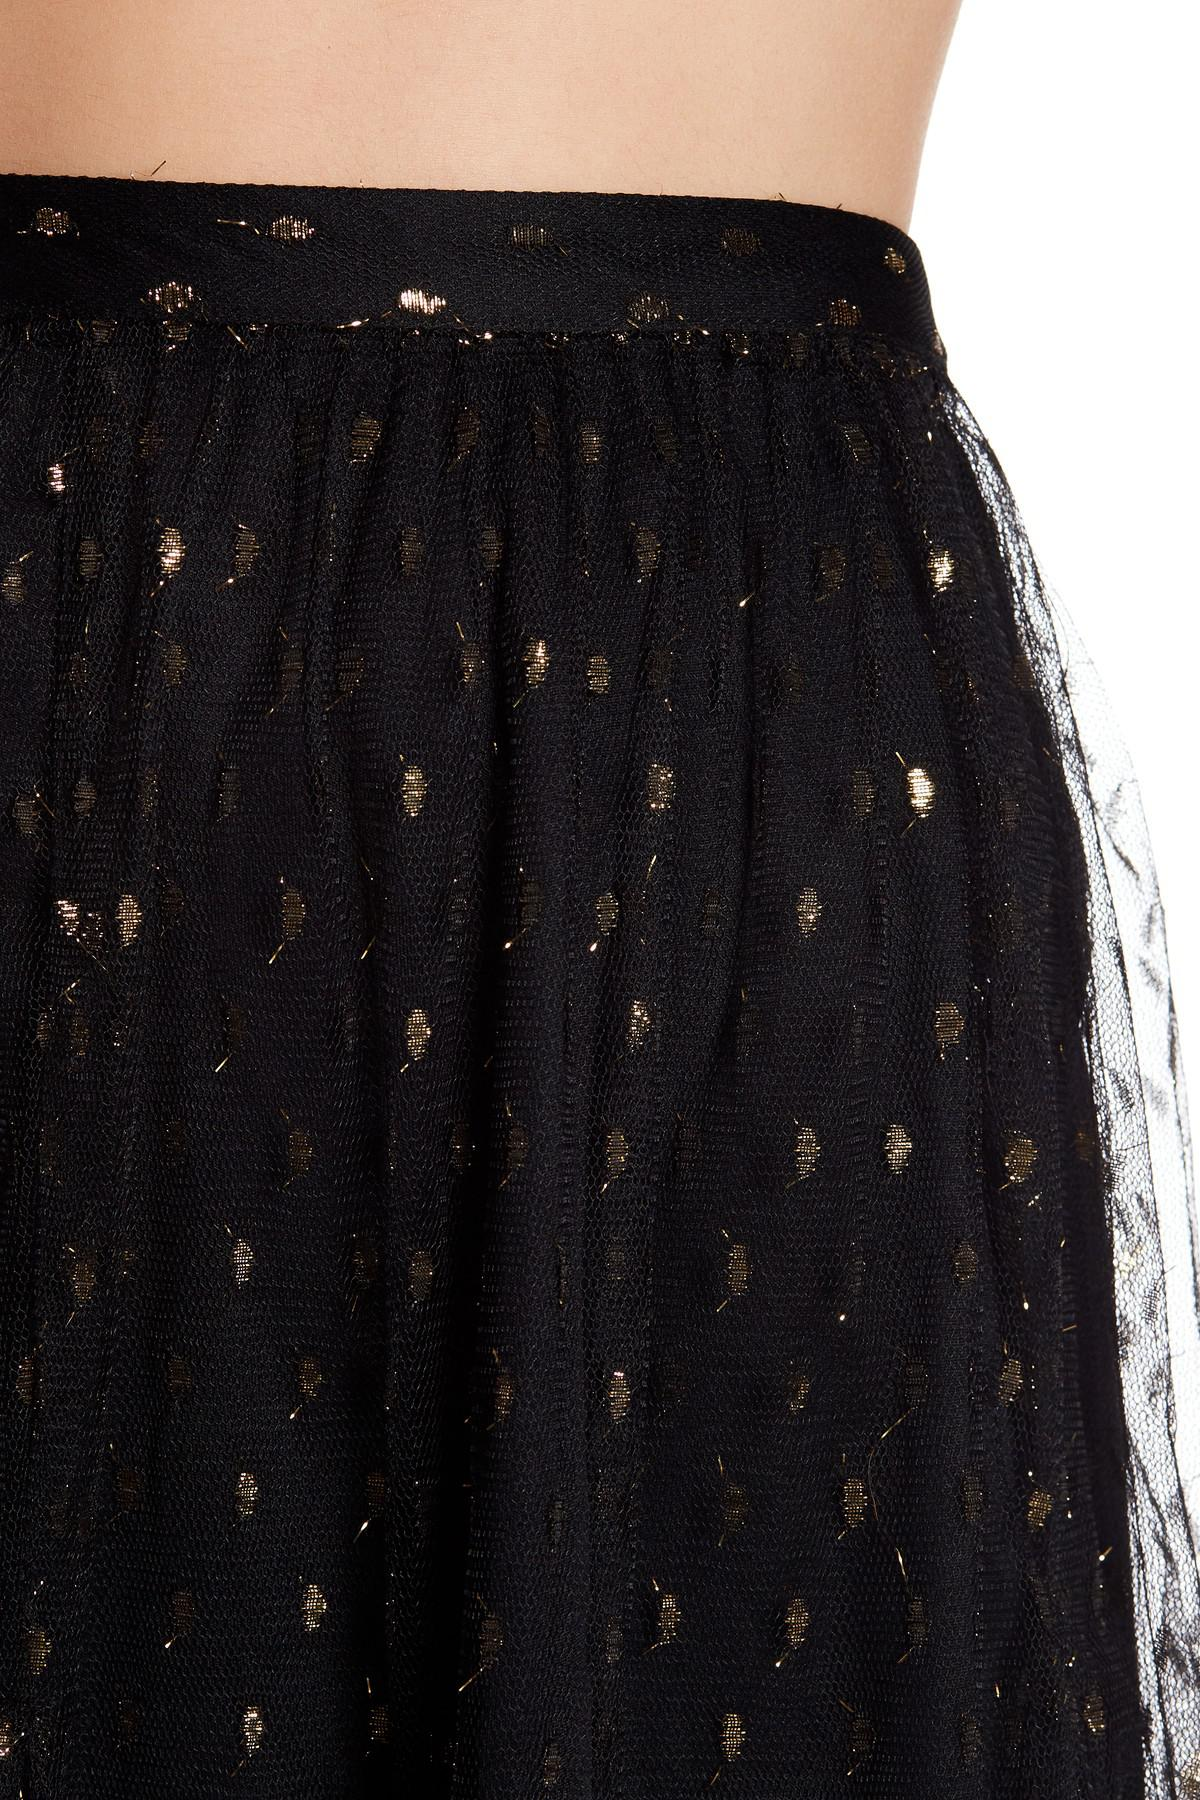 faf0325e0d Eva Franco Zelda Clip Dot Midi Skirt in Black - Lyst